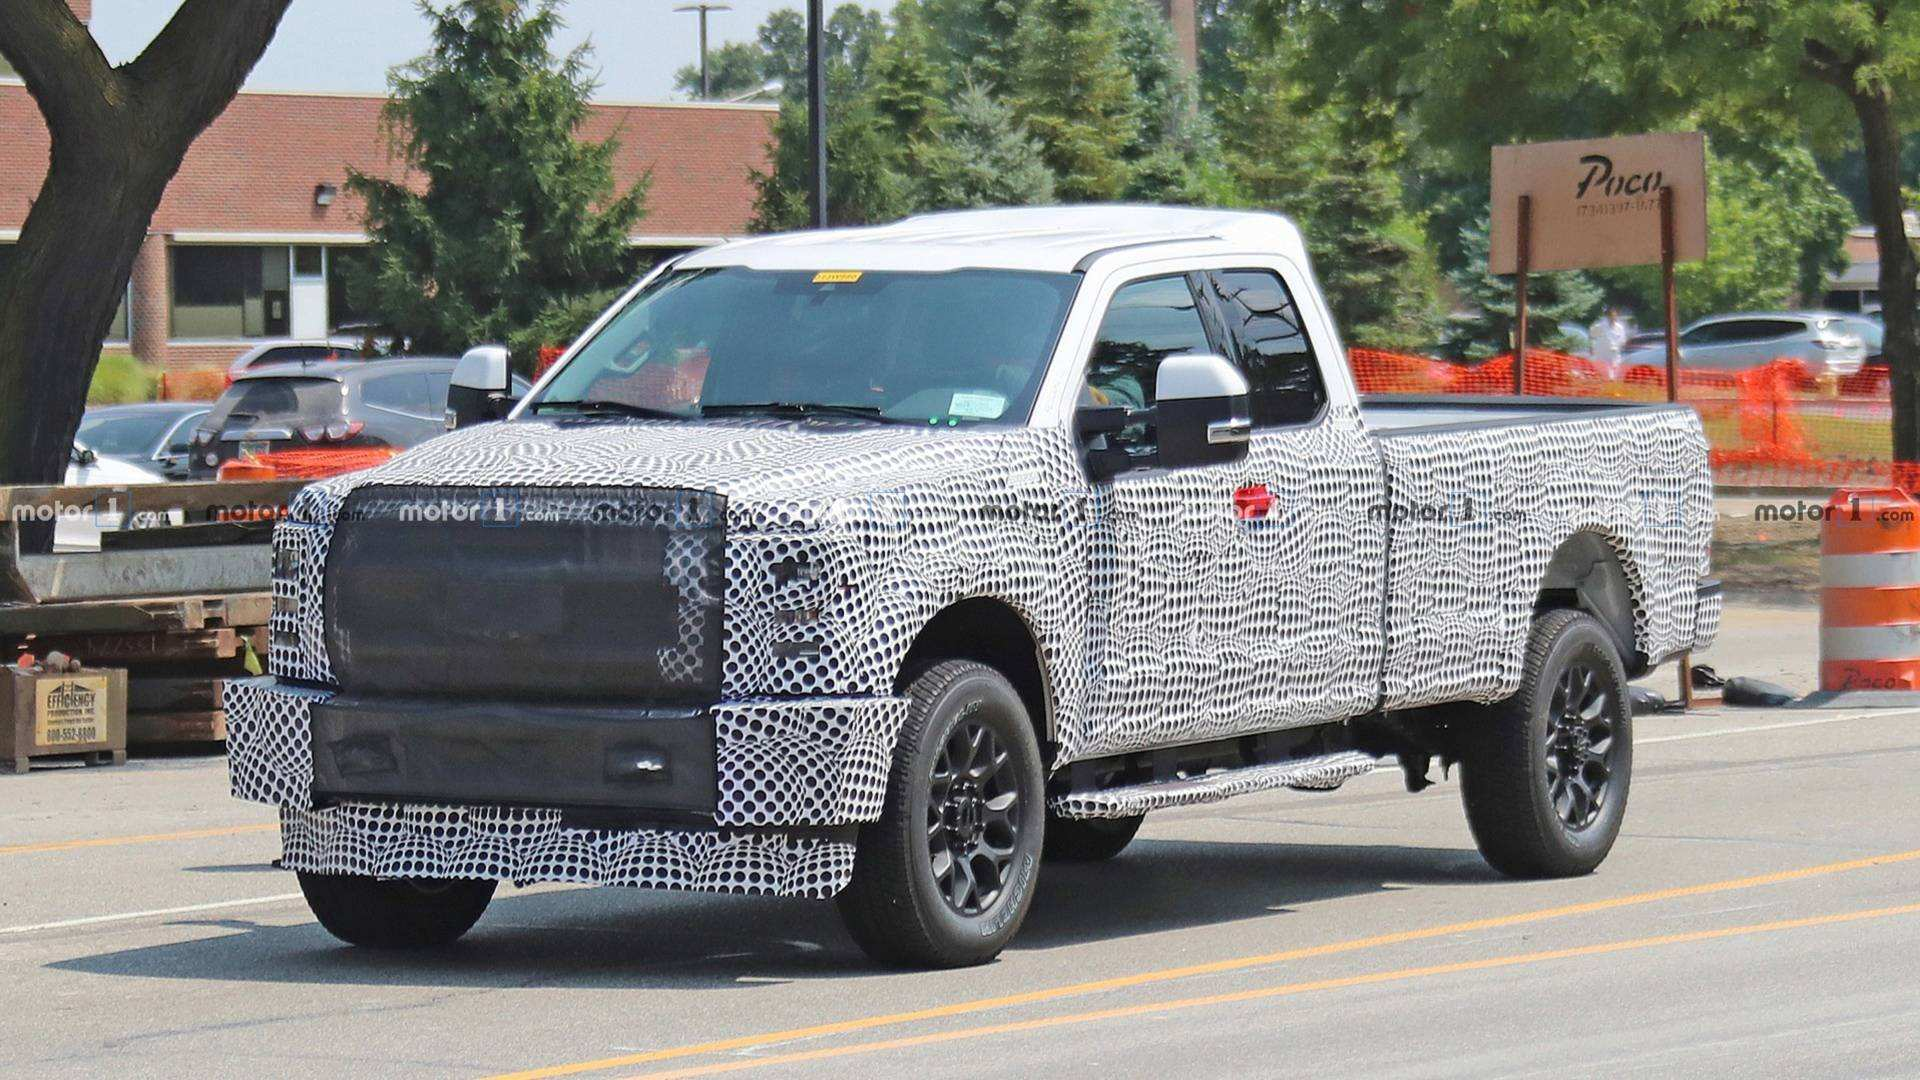 71 Concept of 2020 Ford F 250 Exterior for 2020 Ford F 250